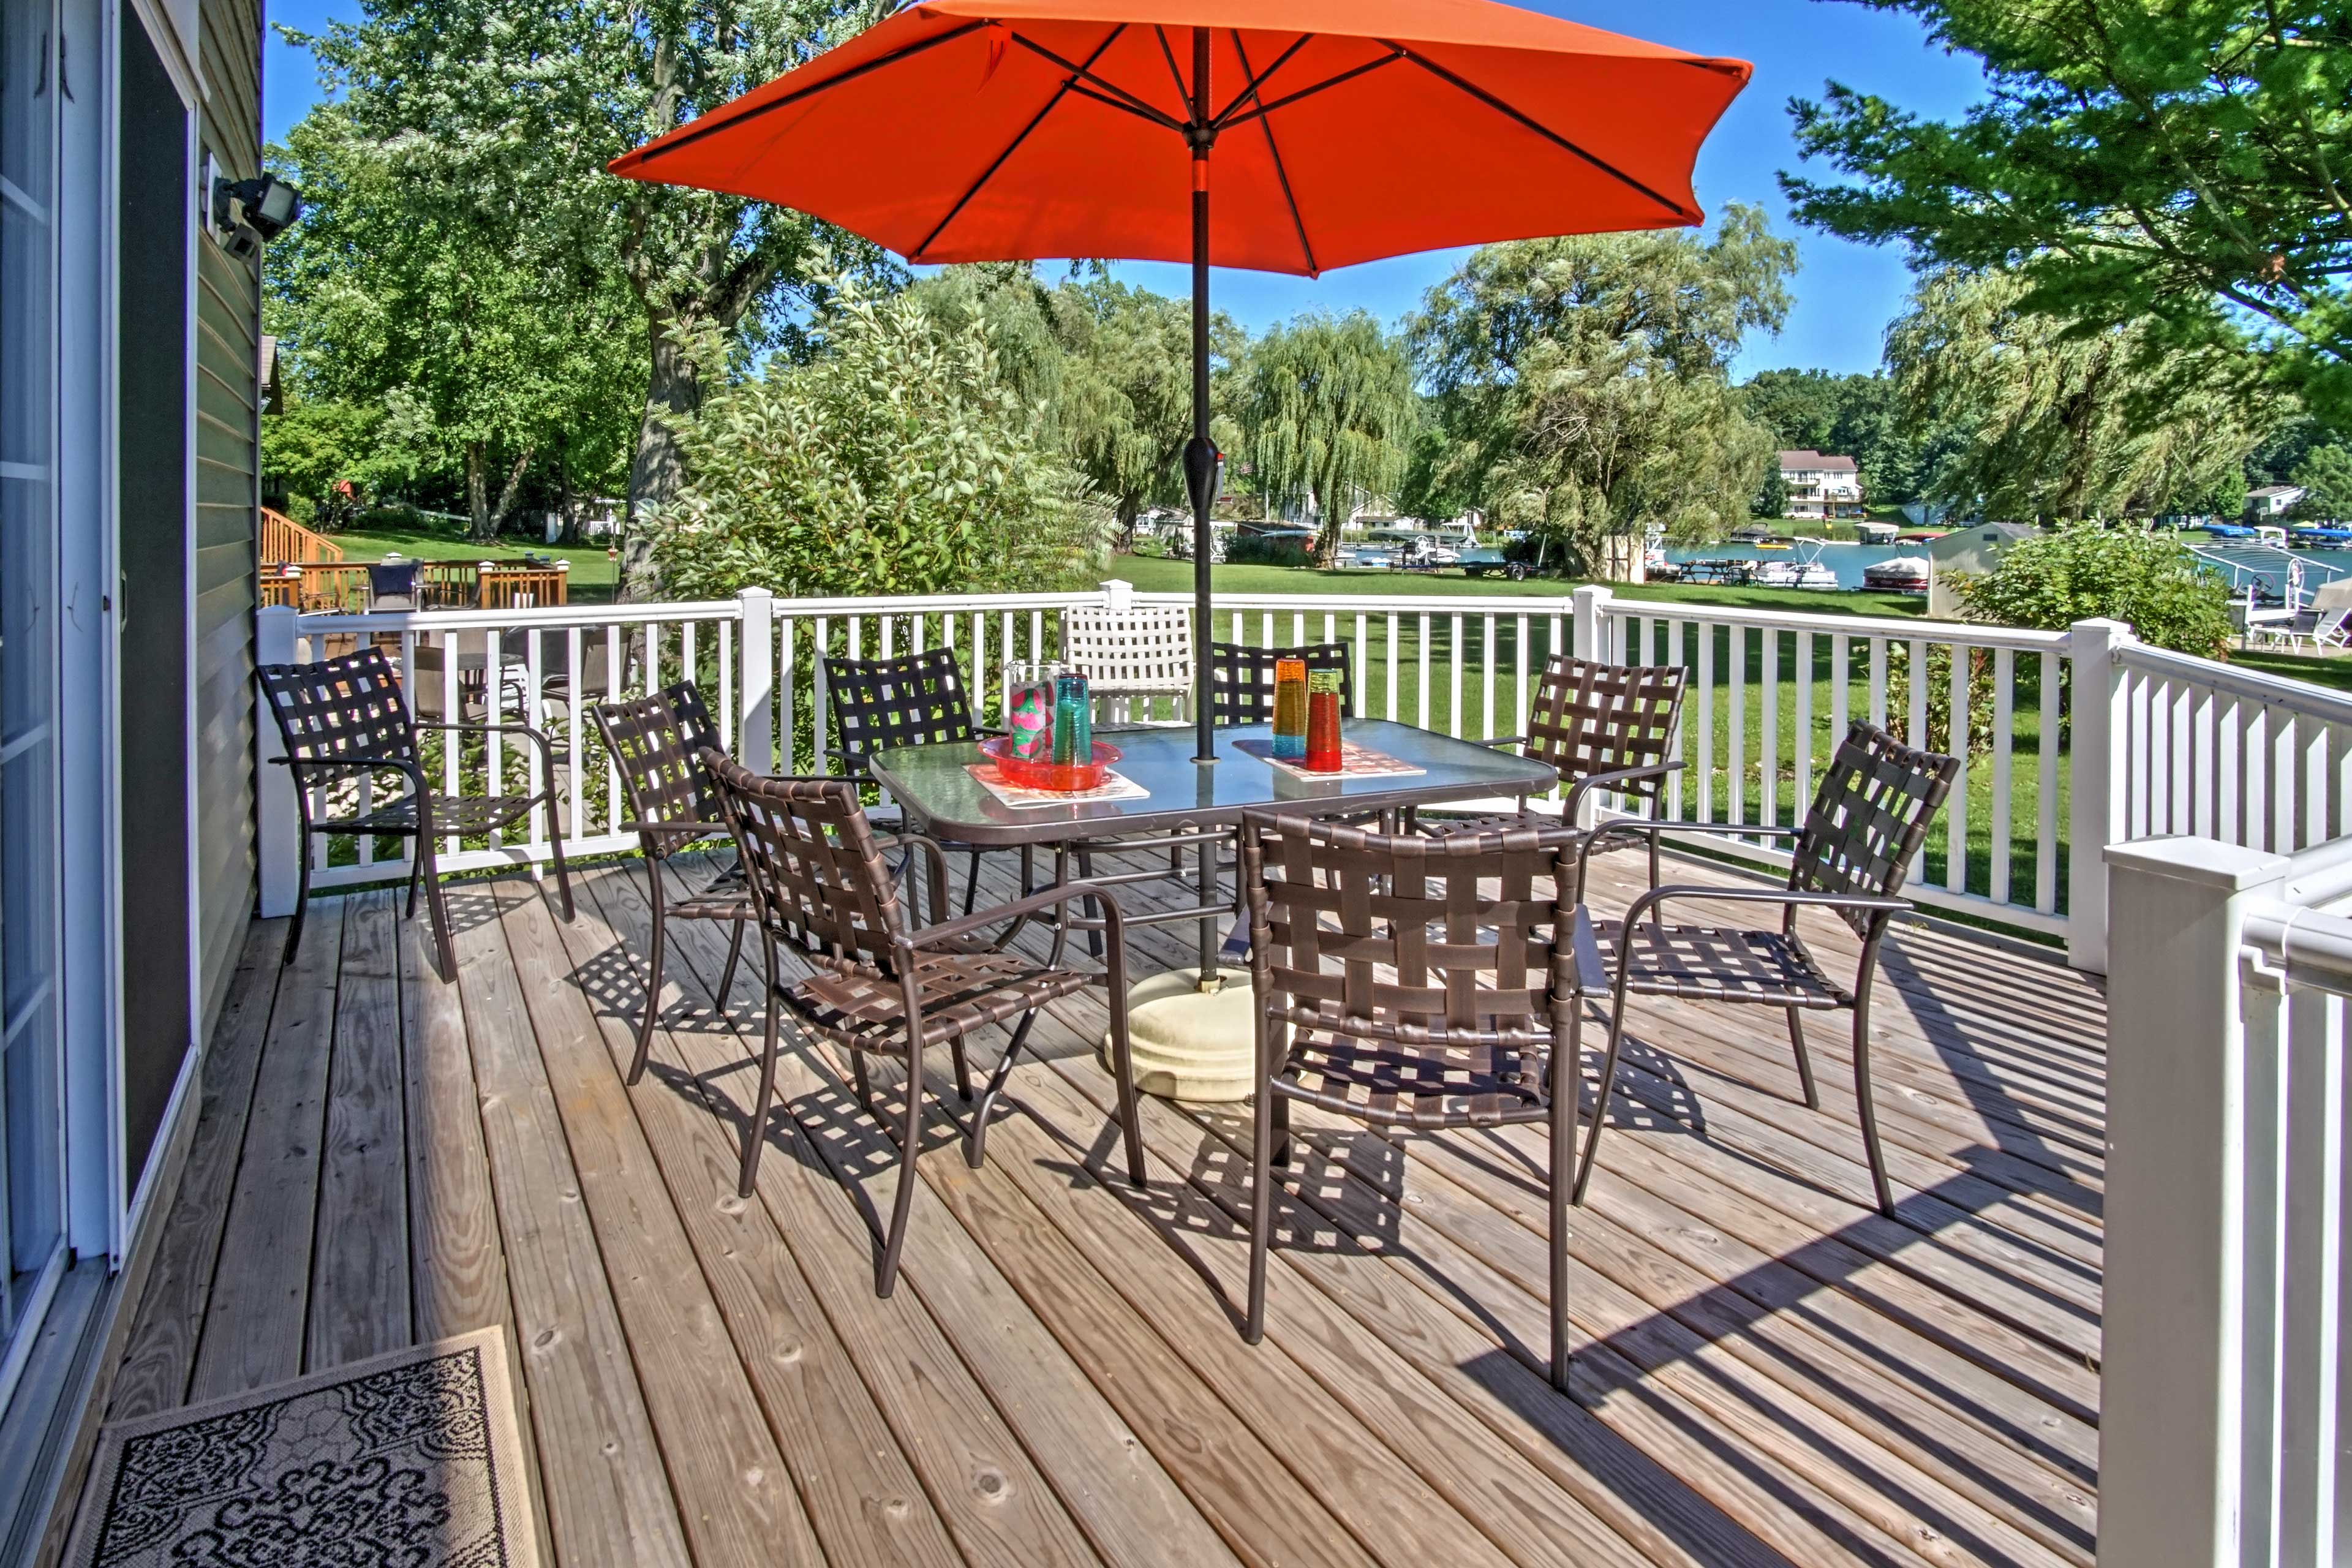 Relax and reconnect with family and friends on the back deck.